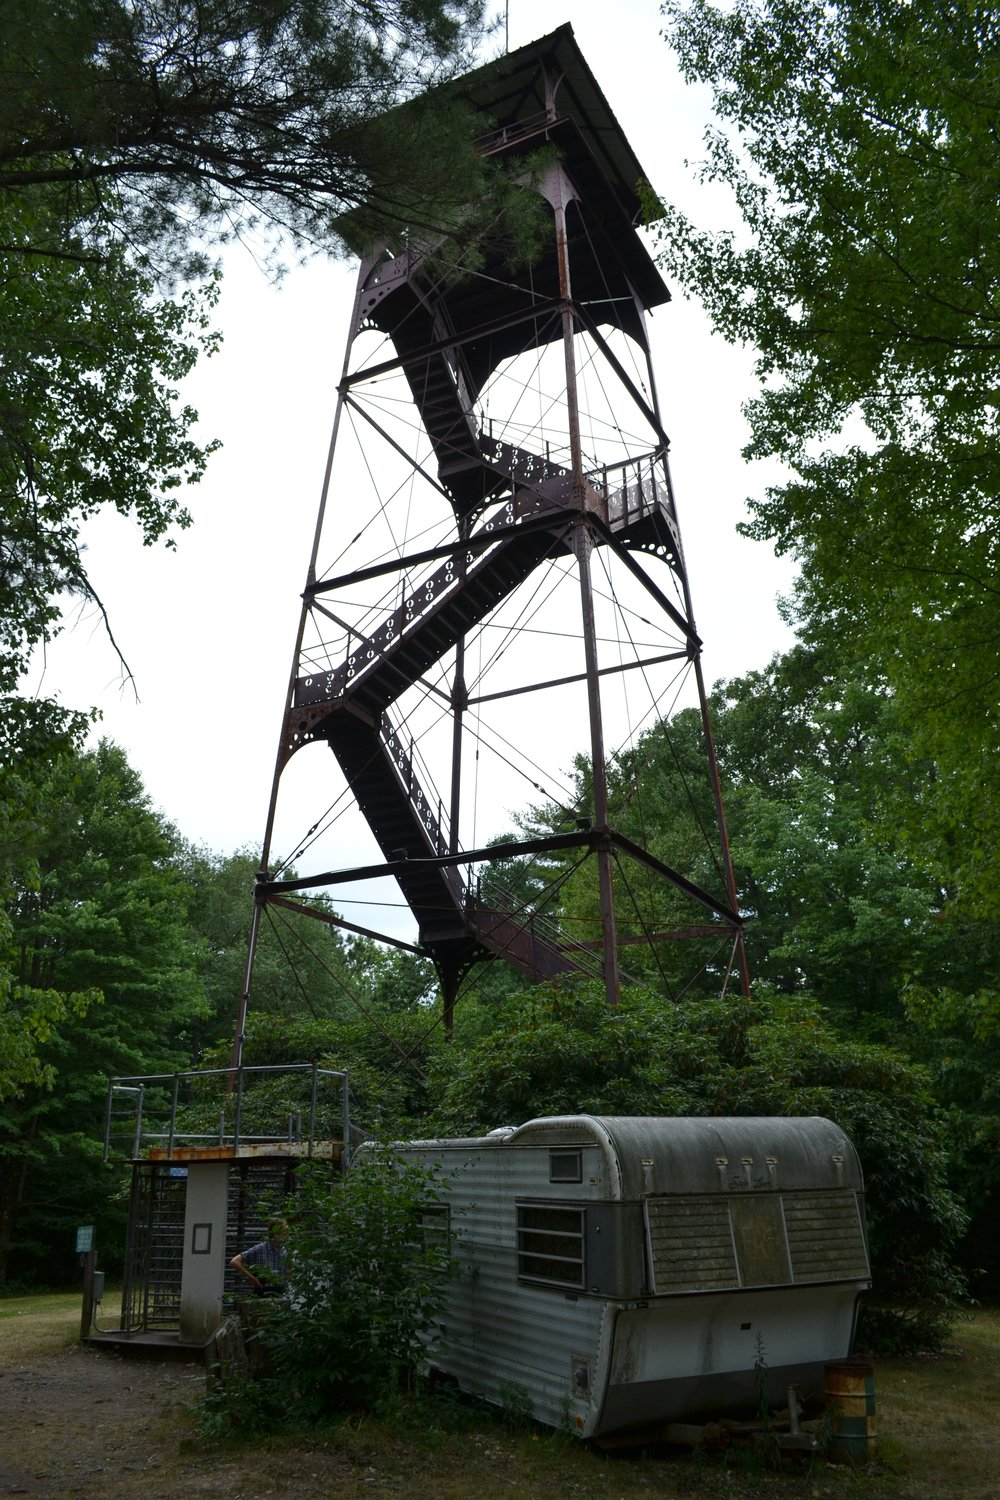 I can honestly say this is the first privately-owned fire tower I ever paid $2 to climb.